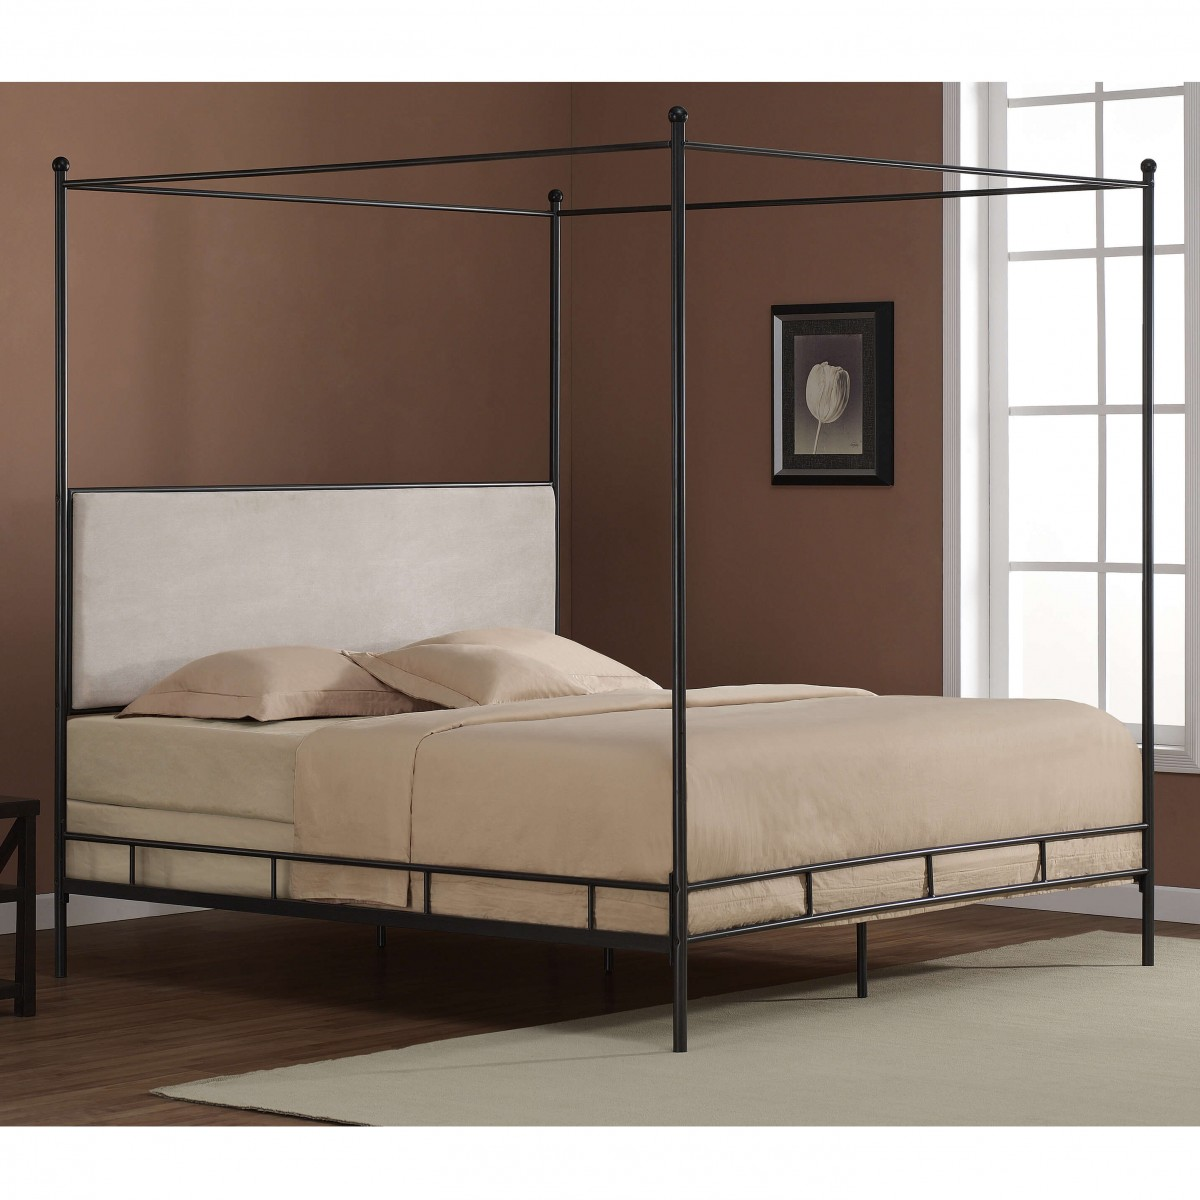 lion king canopy metal frame bed